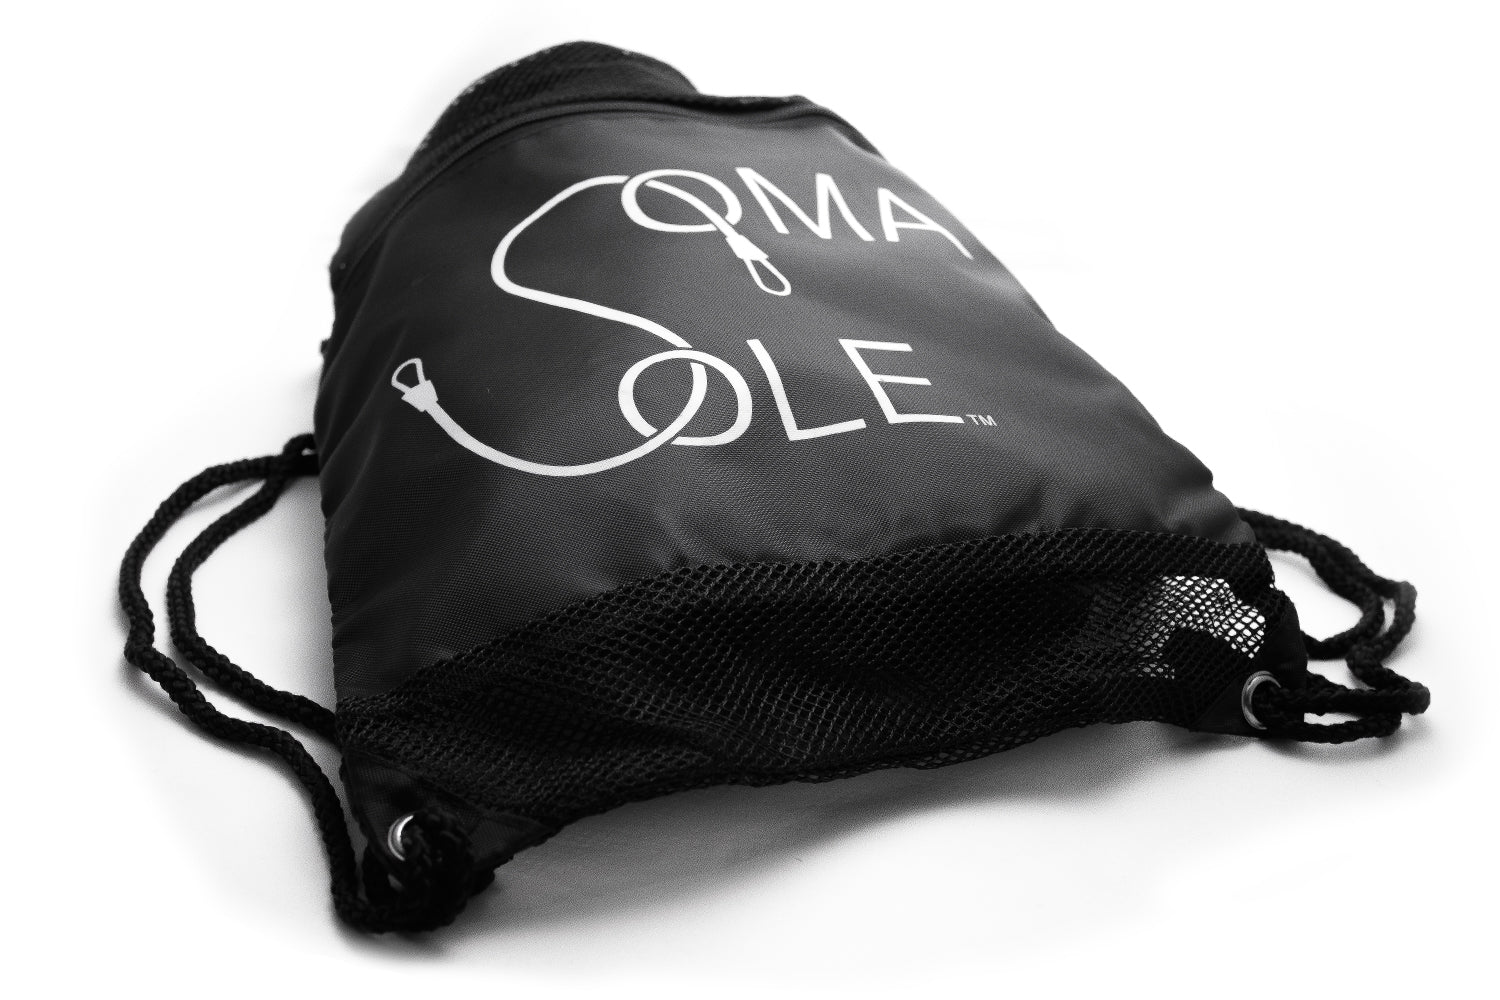 The Patented SomaSole® Gym-In-A-Bag